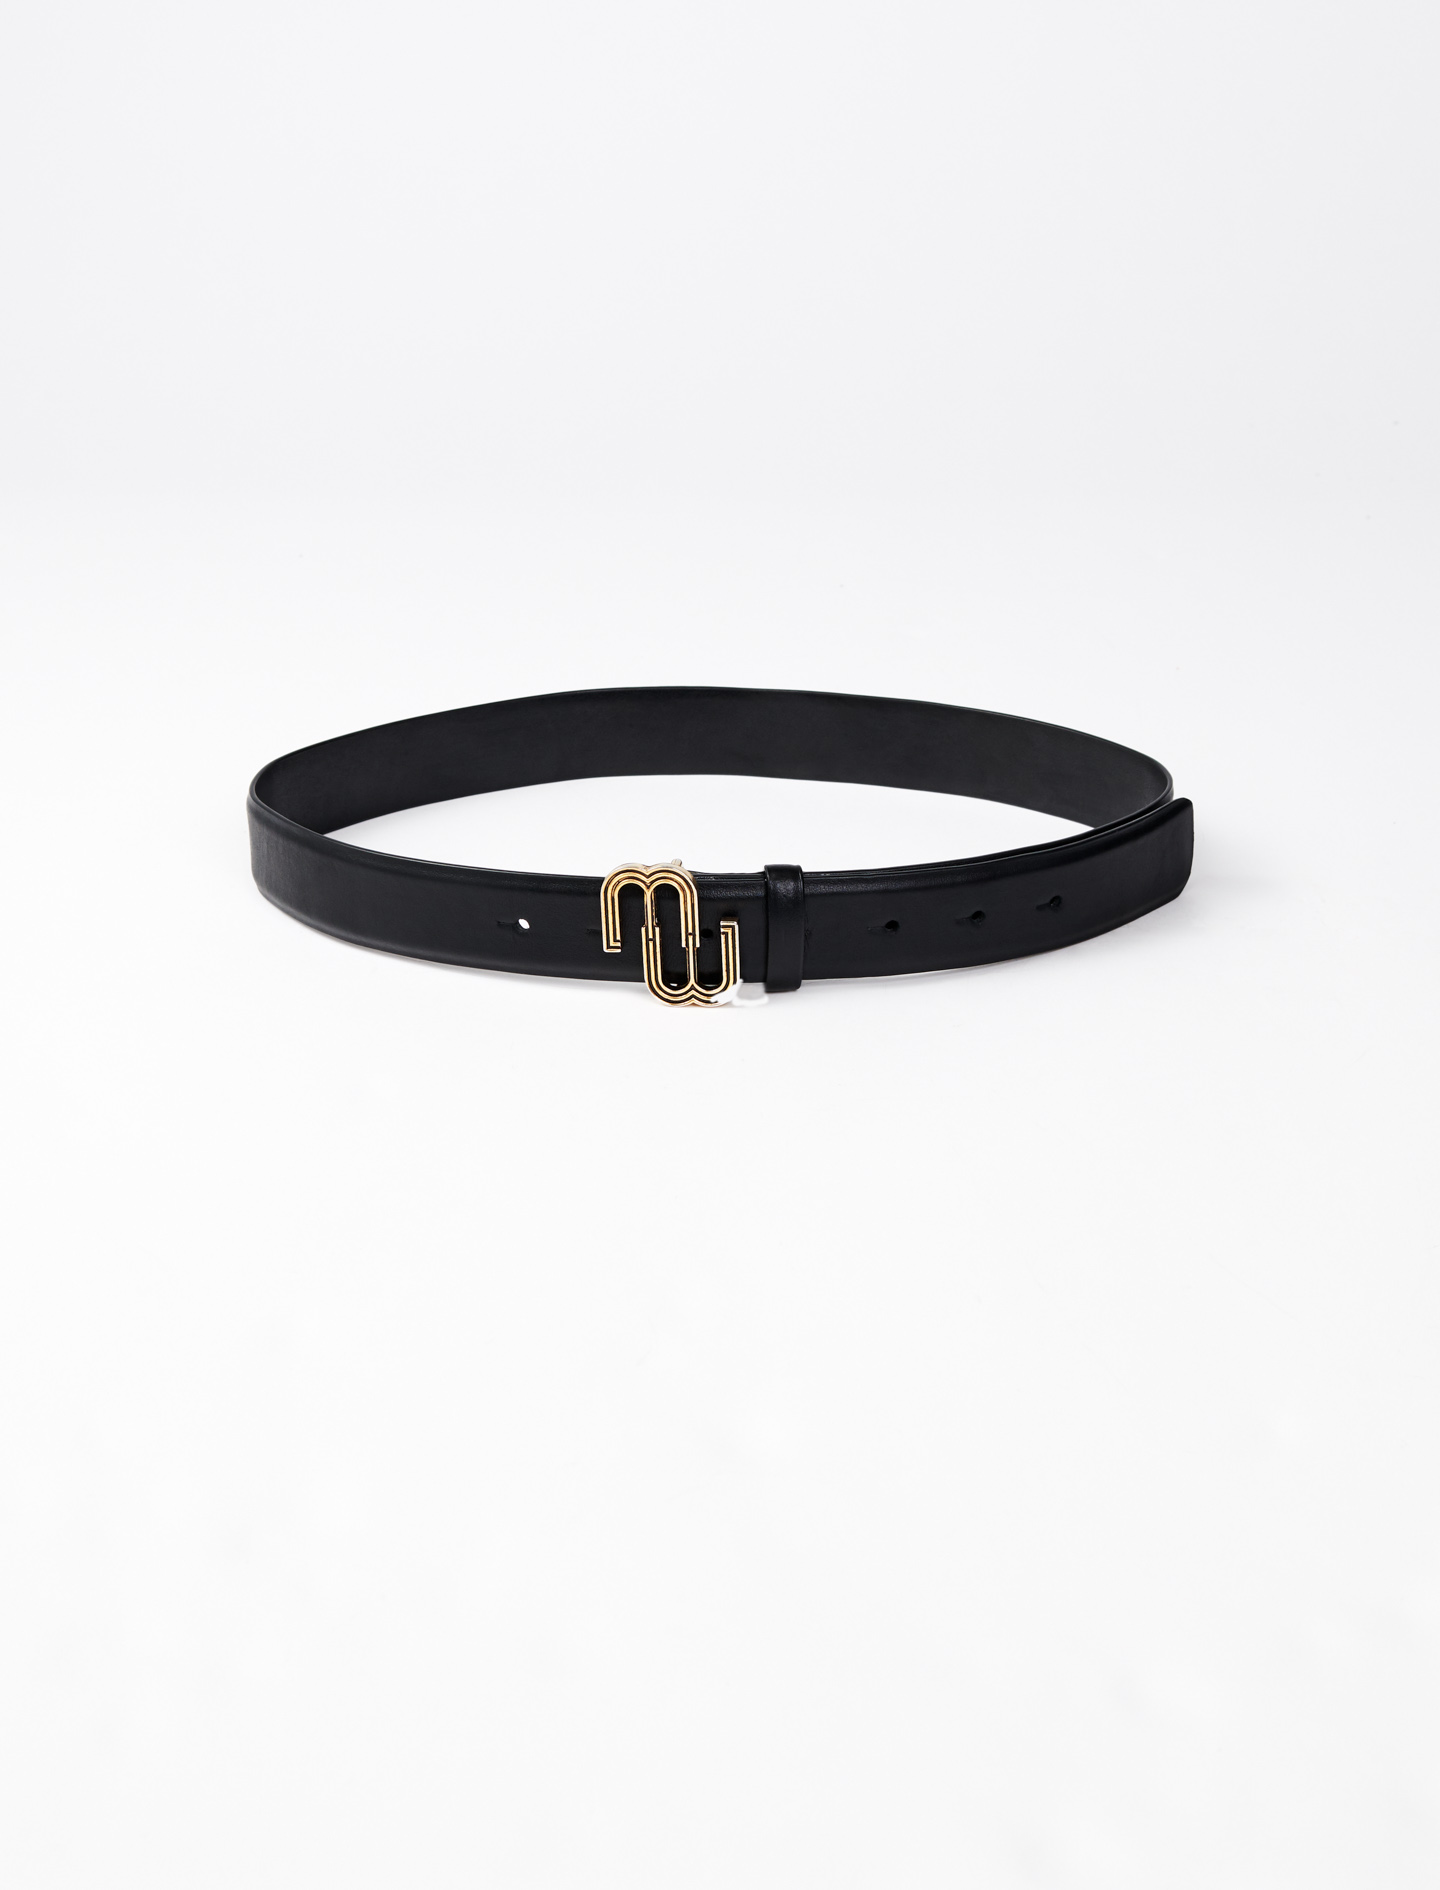 Leather belt with monogram buckle - Black